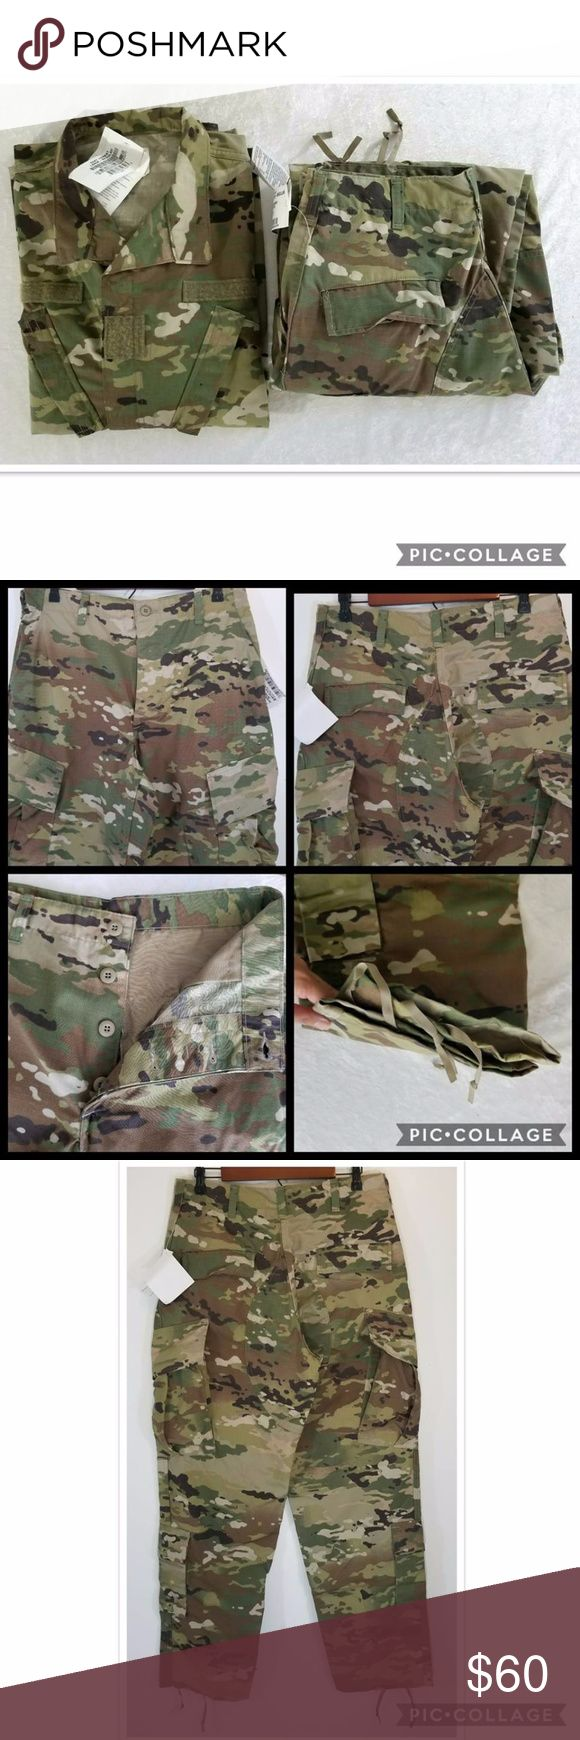 US Army woodland OCP uniform New with tag! OCP ACU is non-flame resistant made of 50% nylon and 50% cotton. To combat insect and tick borne diseases, ACUs are factory treated with permethrin insecticide. Sizes in pictures. Smoke free home. Bluewater Defense Other